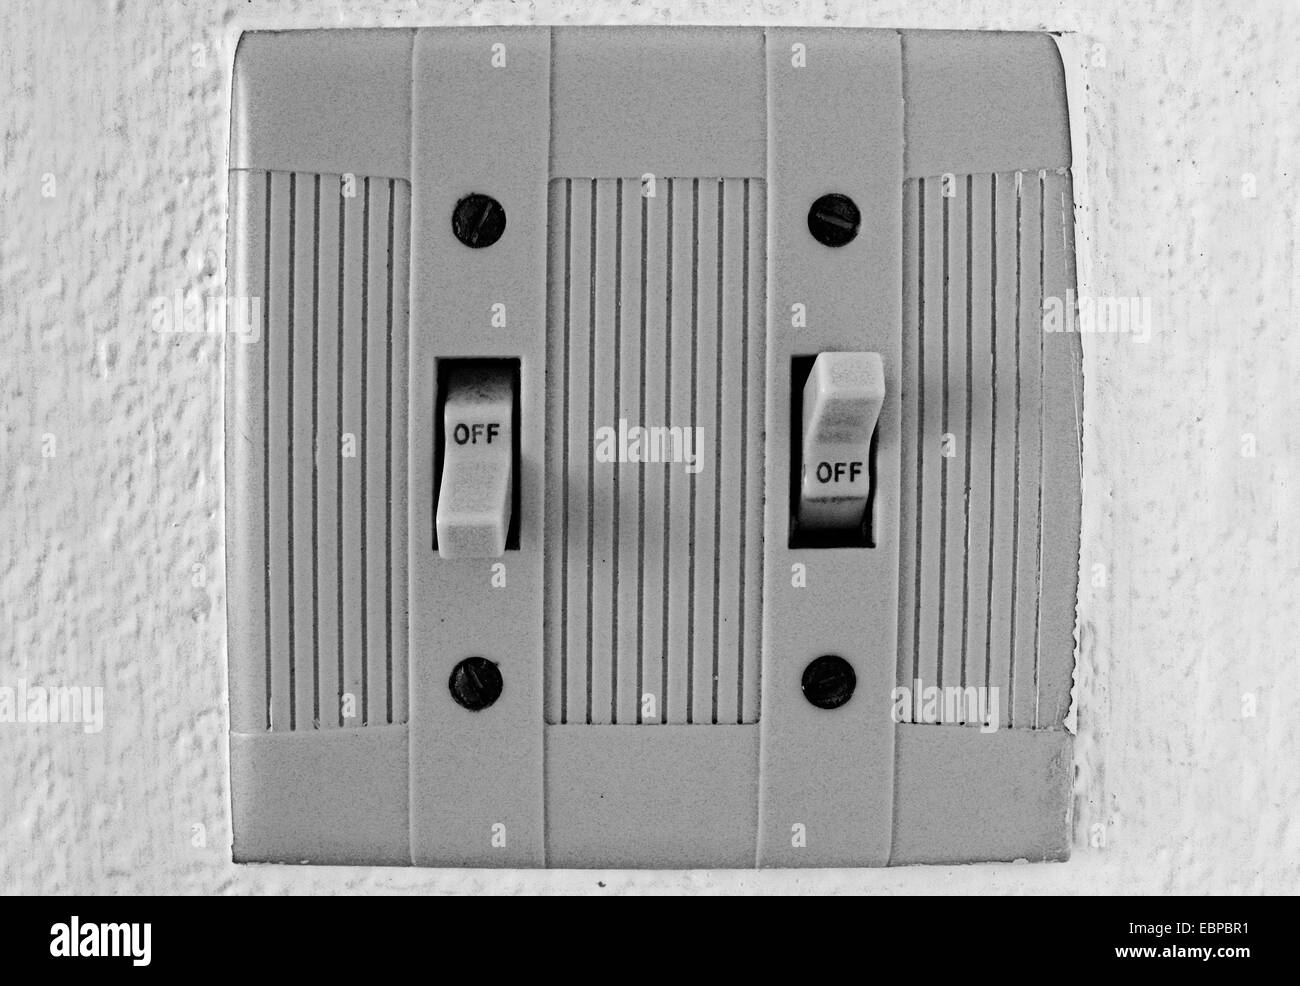 Electrical Switches Stockfotos & Electrical Switches Bilder - Alamy